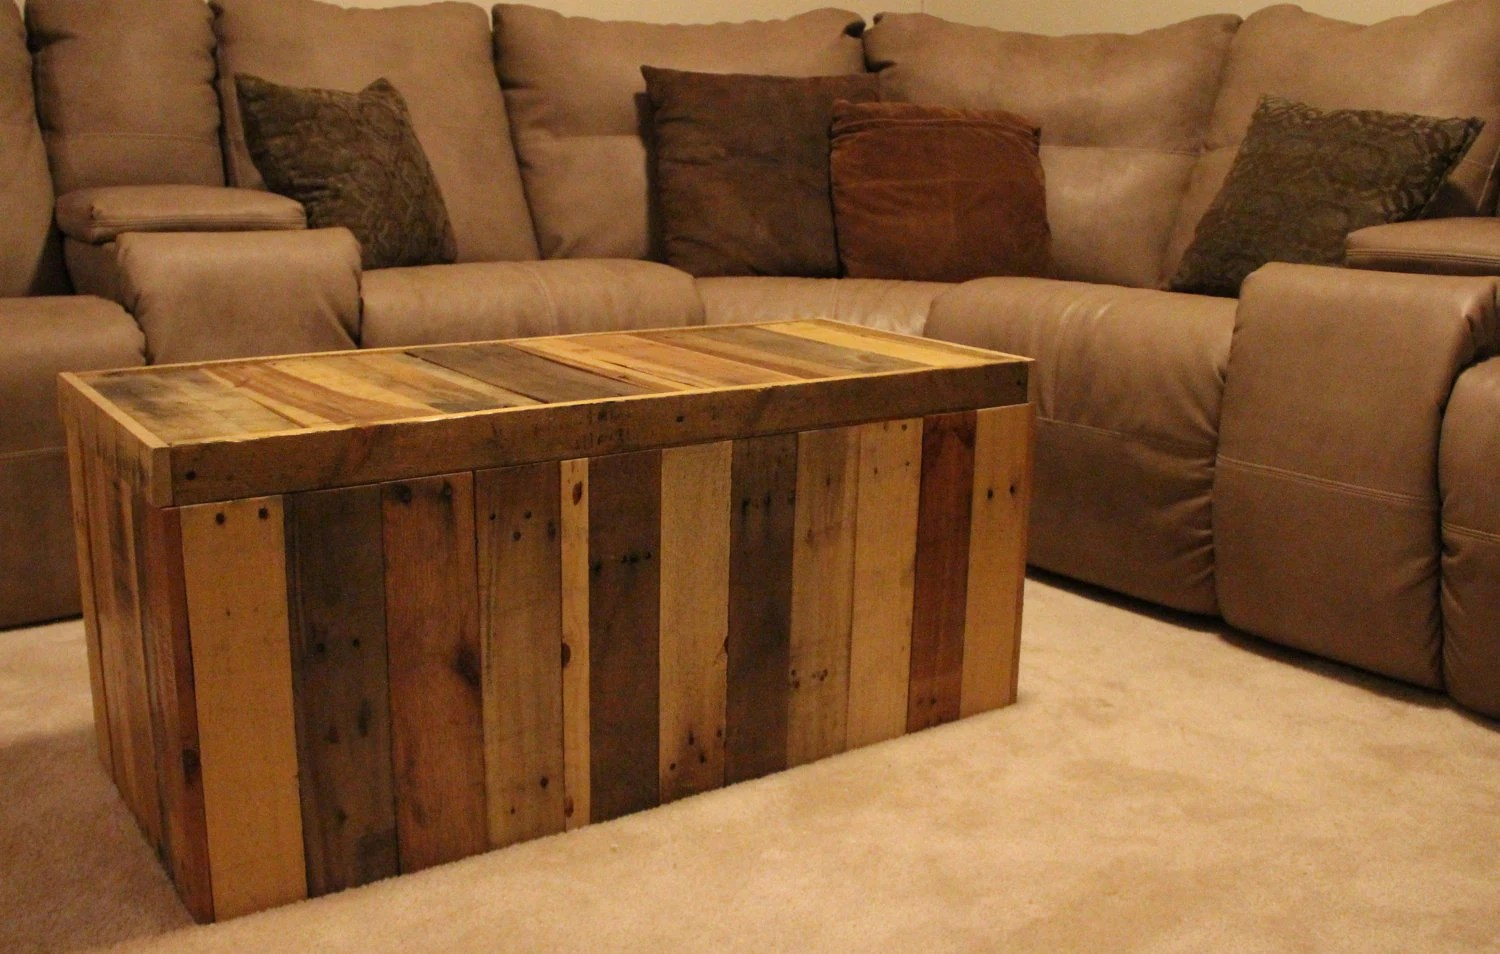 Divano Furniture Reviews Storage Chest Made From Shipping Pallets